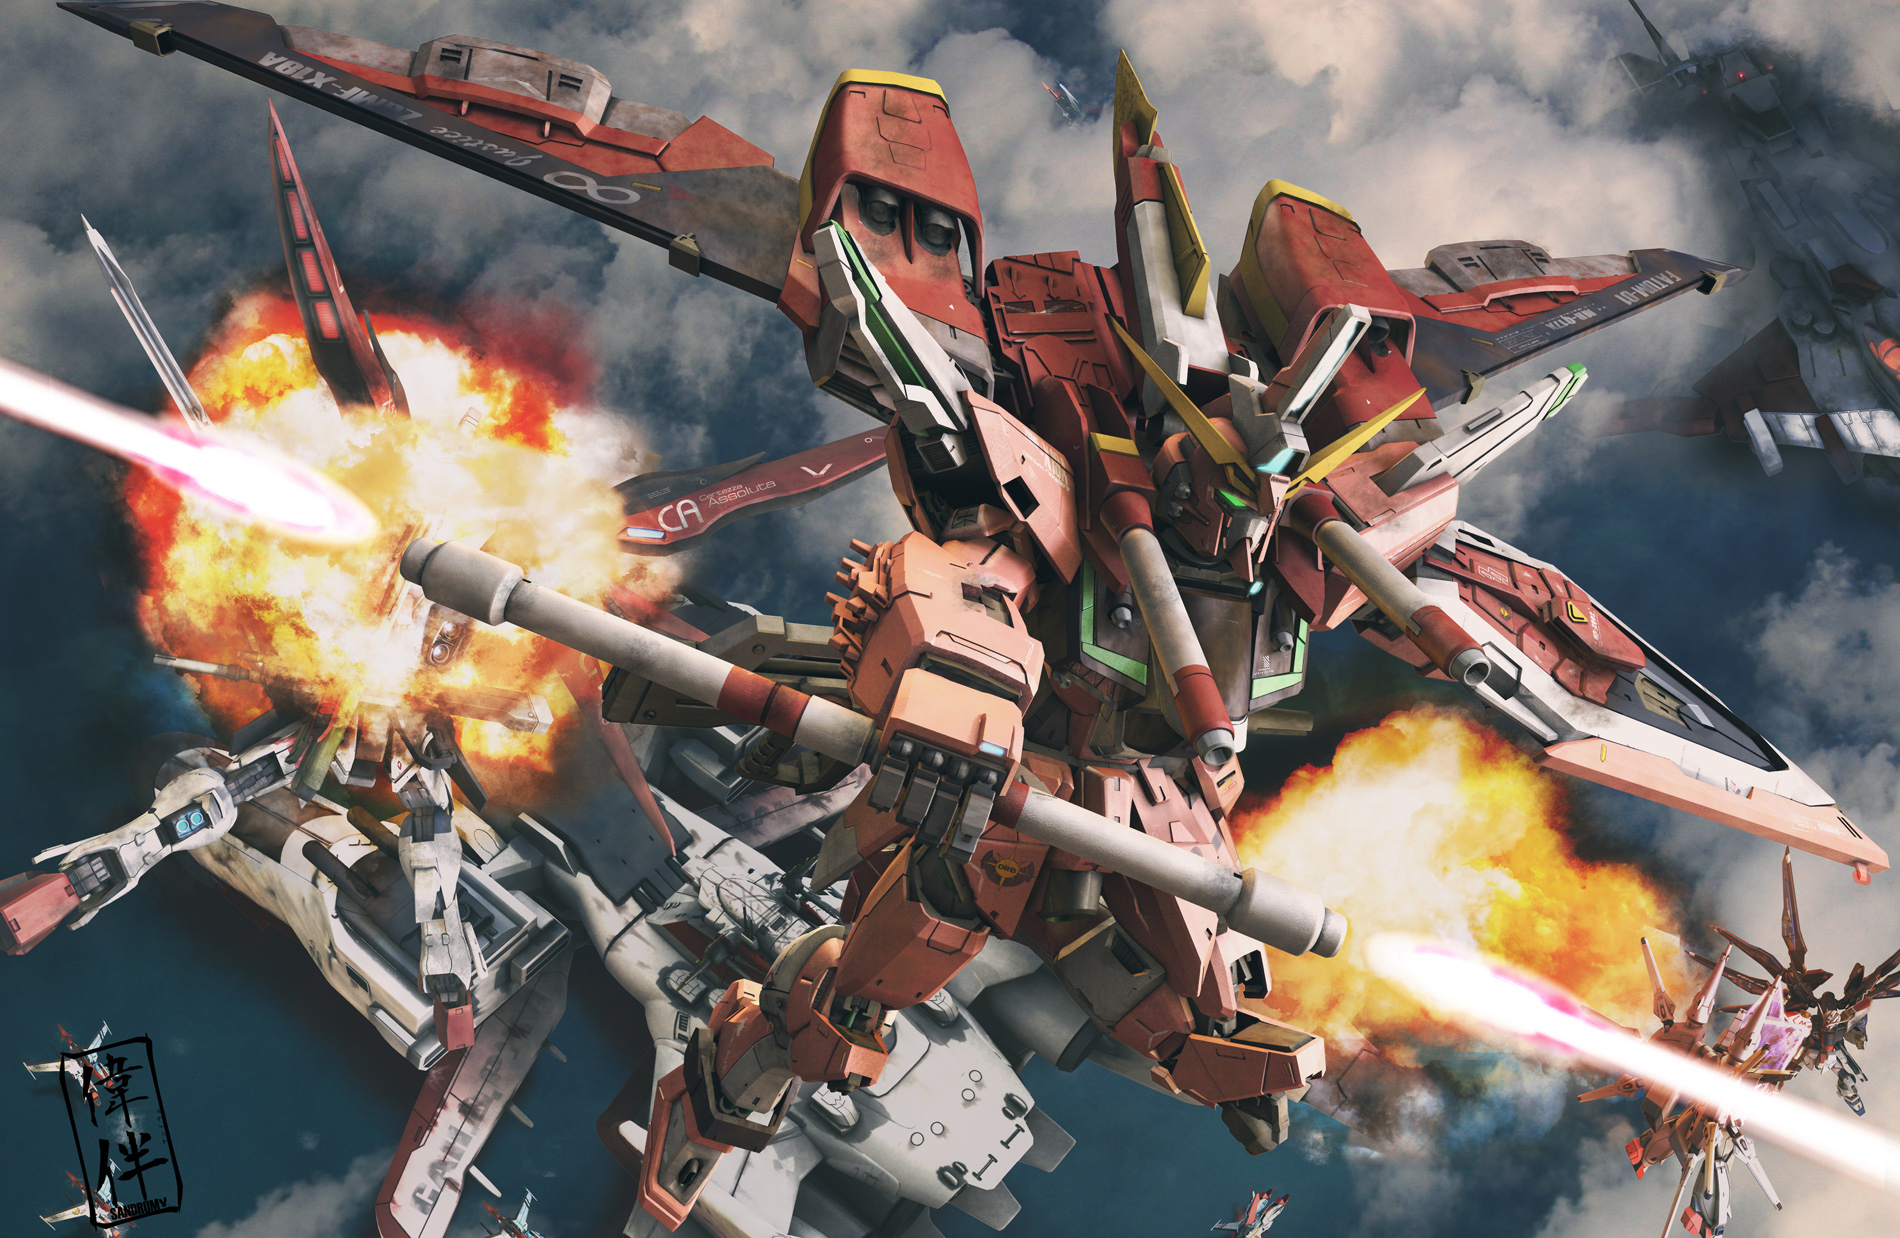 Gundam new awesome hd wallpapers 2015 all hd wallpapers gundam new awesome hd wallpapers 2015 gundam 1 gundam 2 voltagebd Images